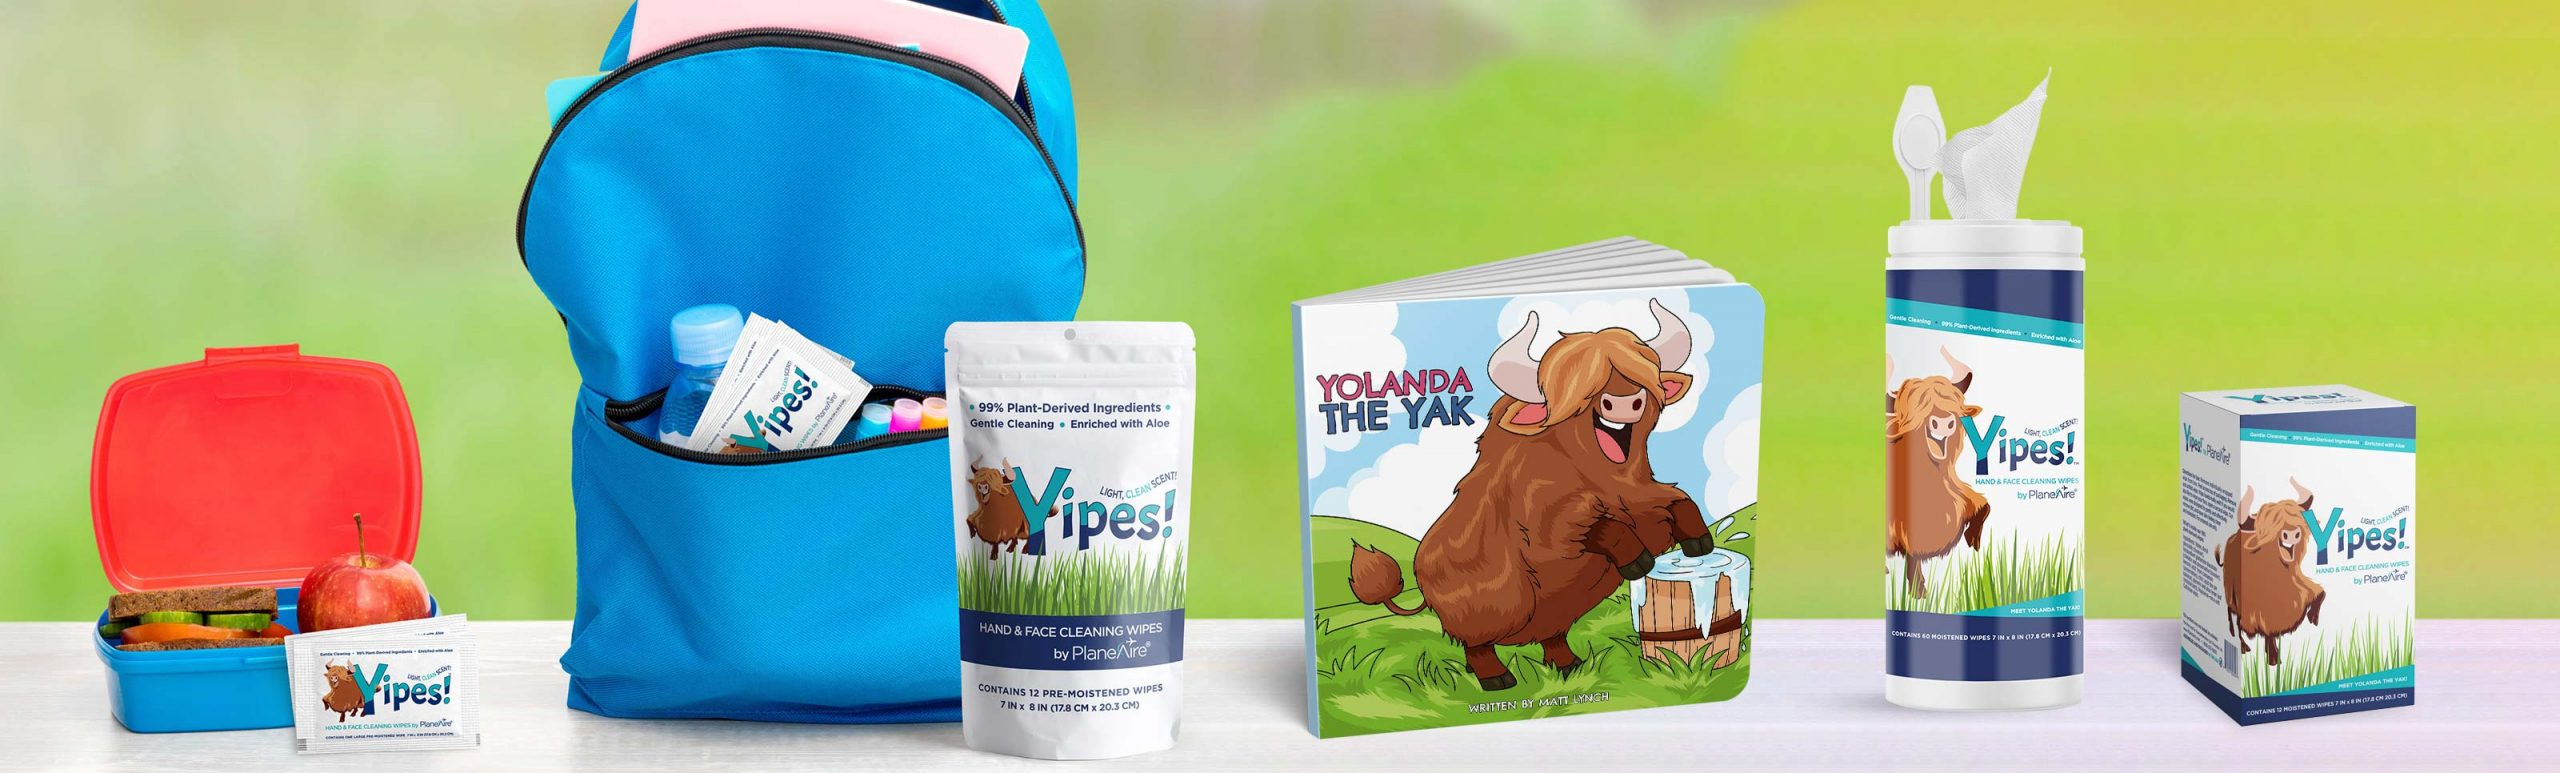 Yipes Hand and Face Wipes for Kids